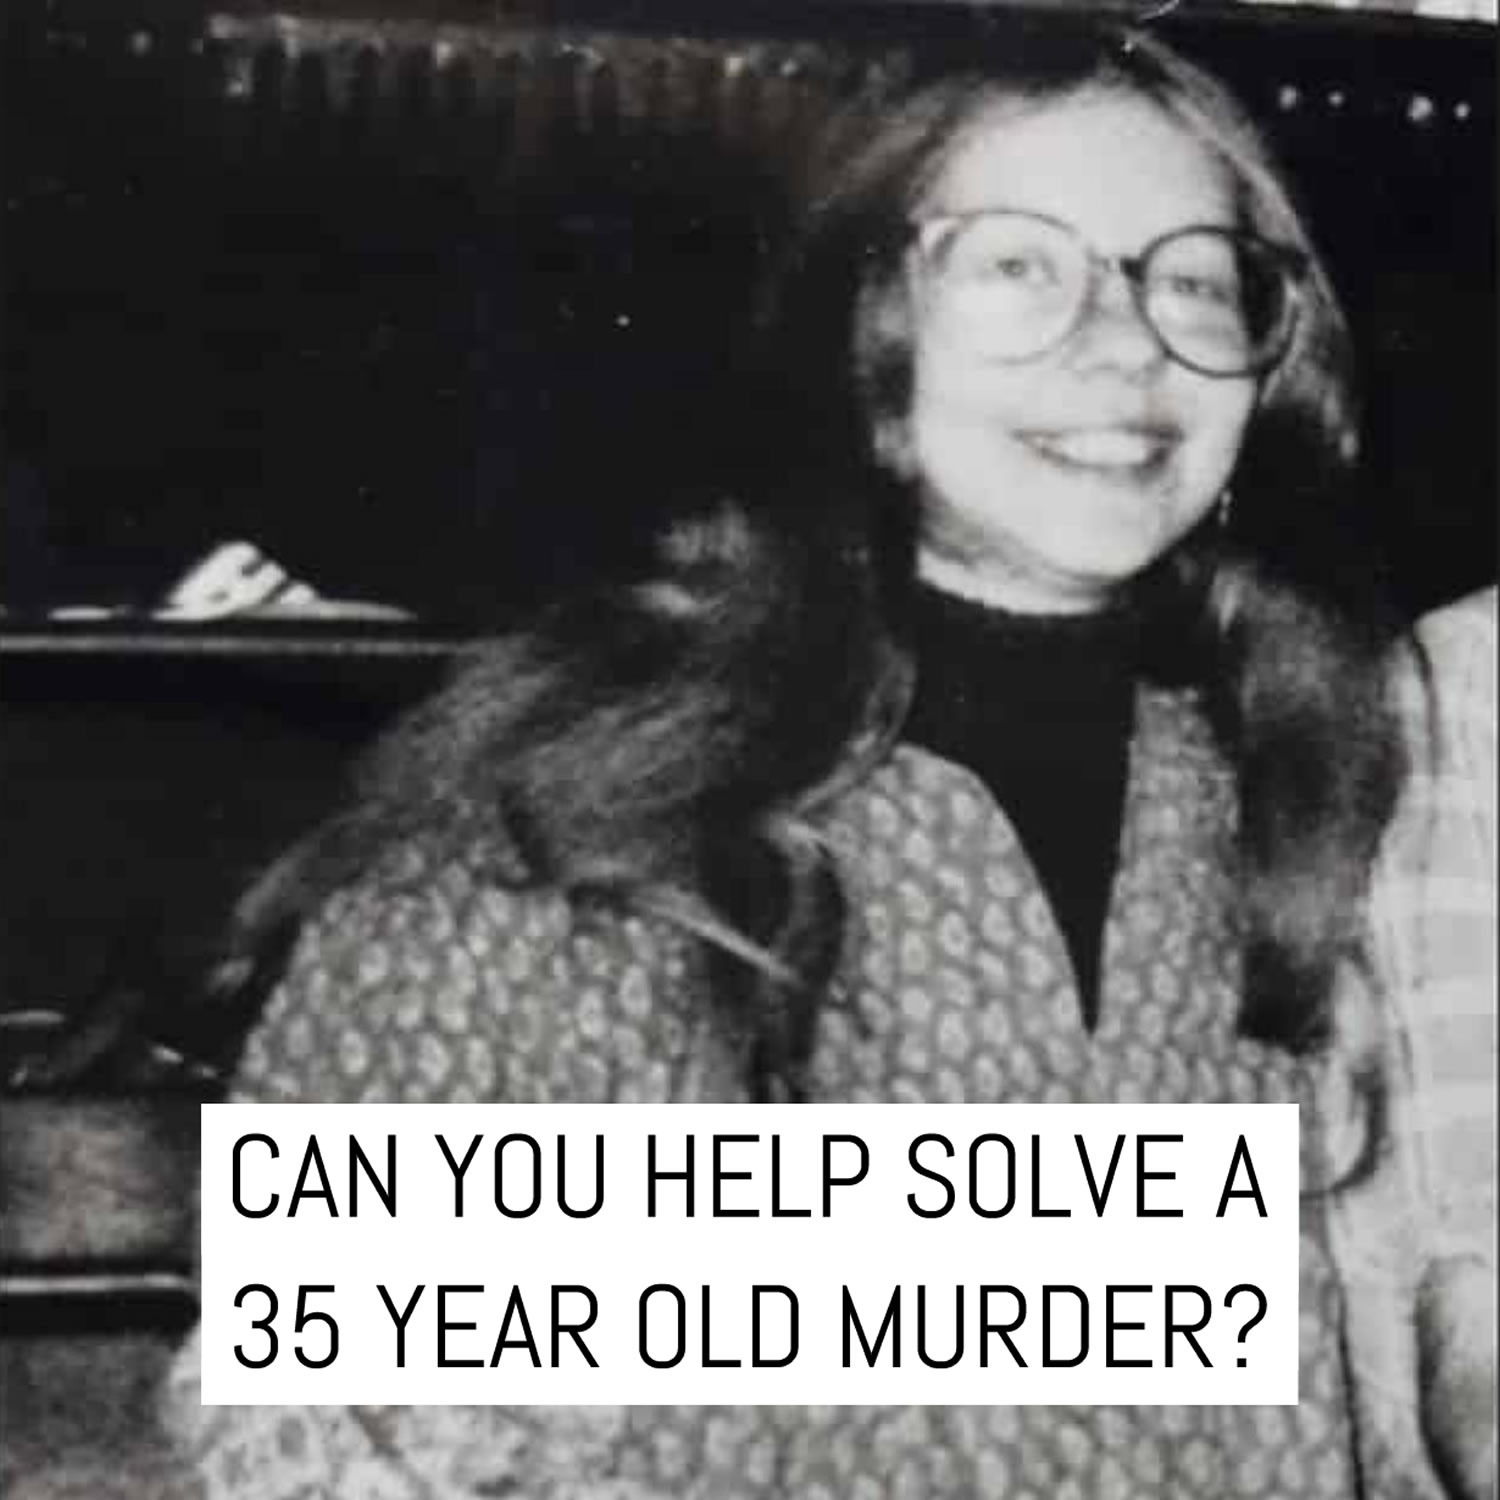 Cover - Can you help solve a 35 year old murder